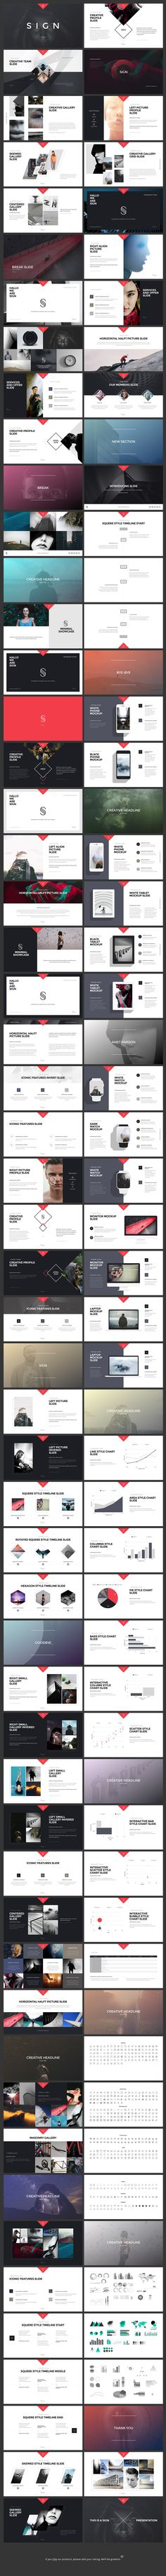 SIGN Keynote Presentation Template